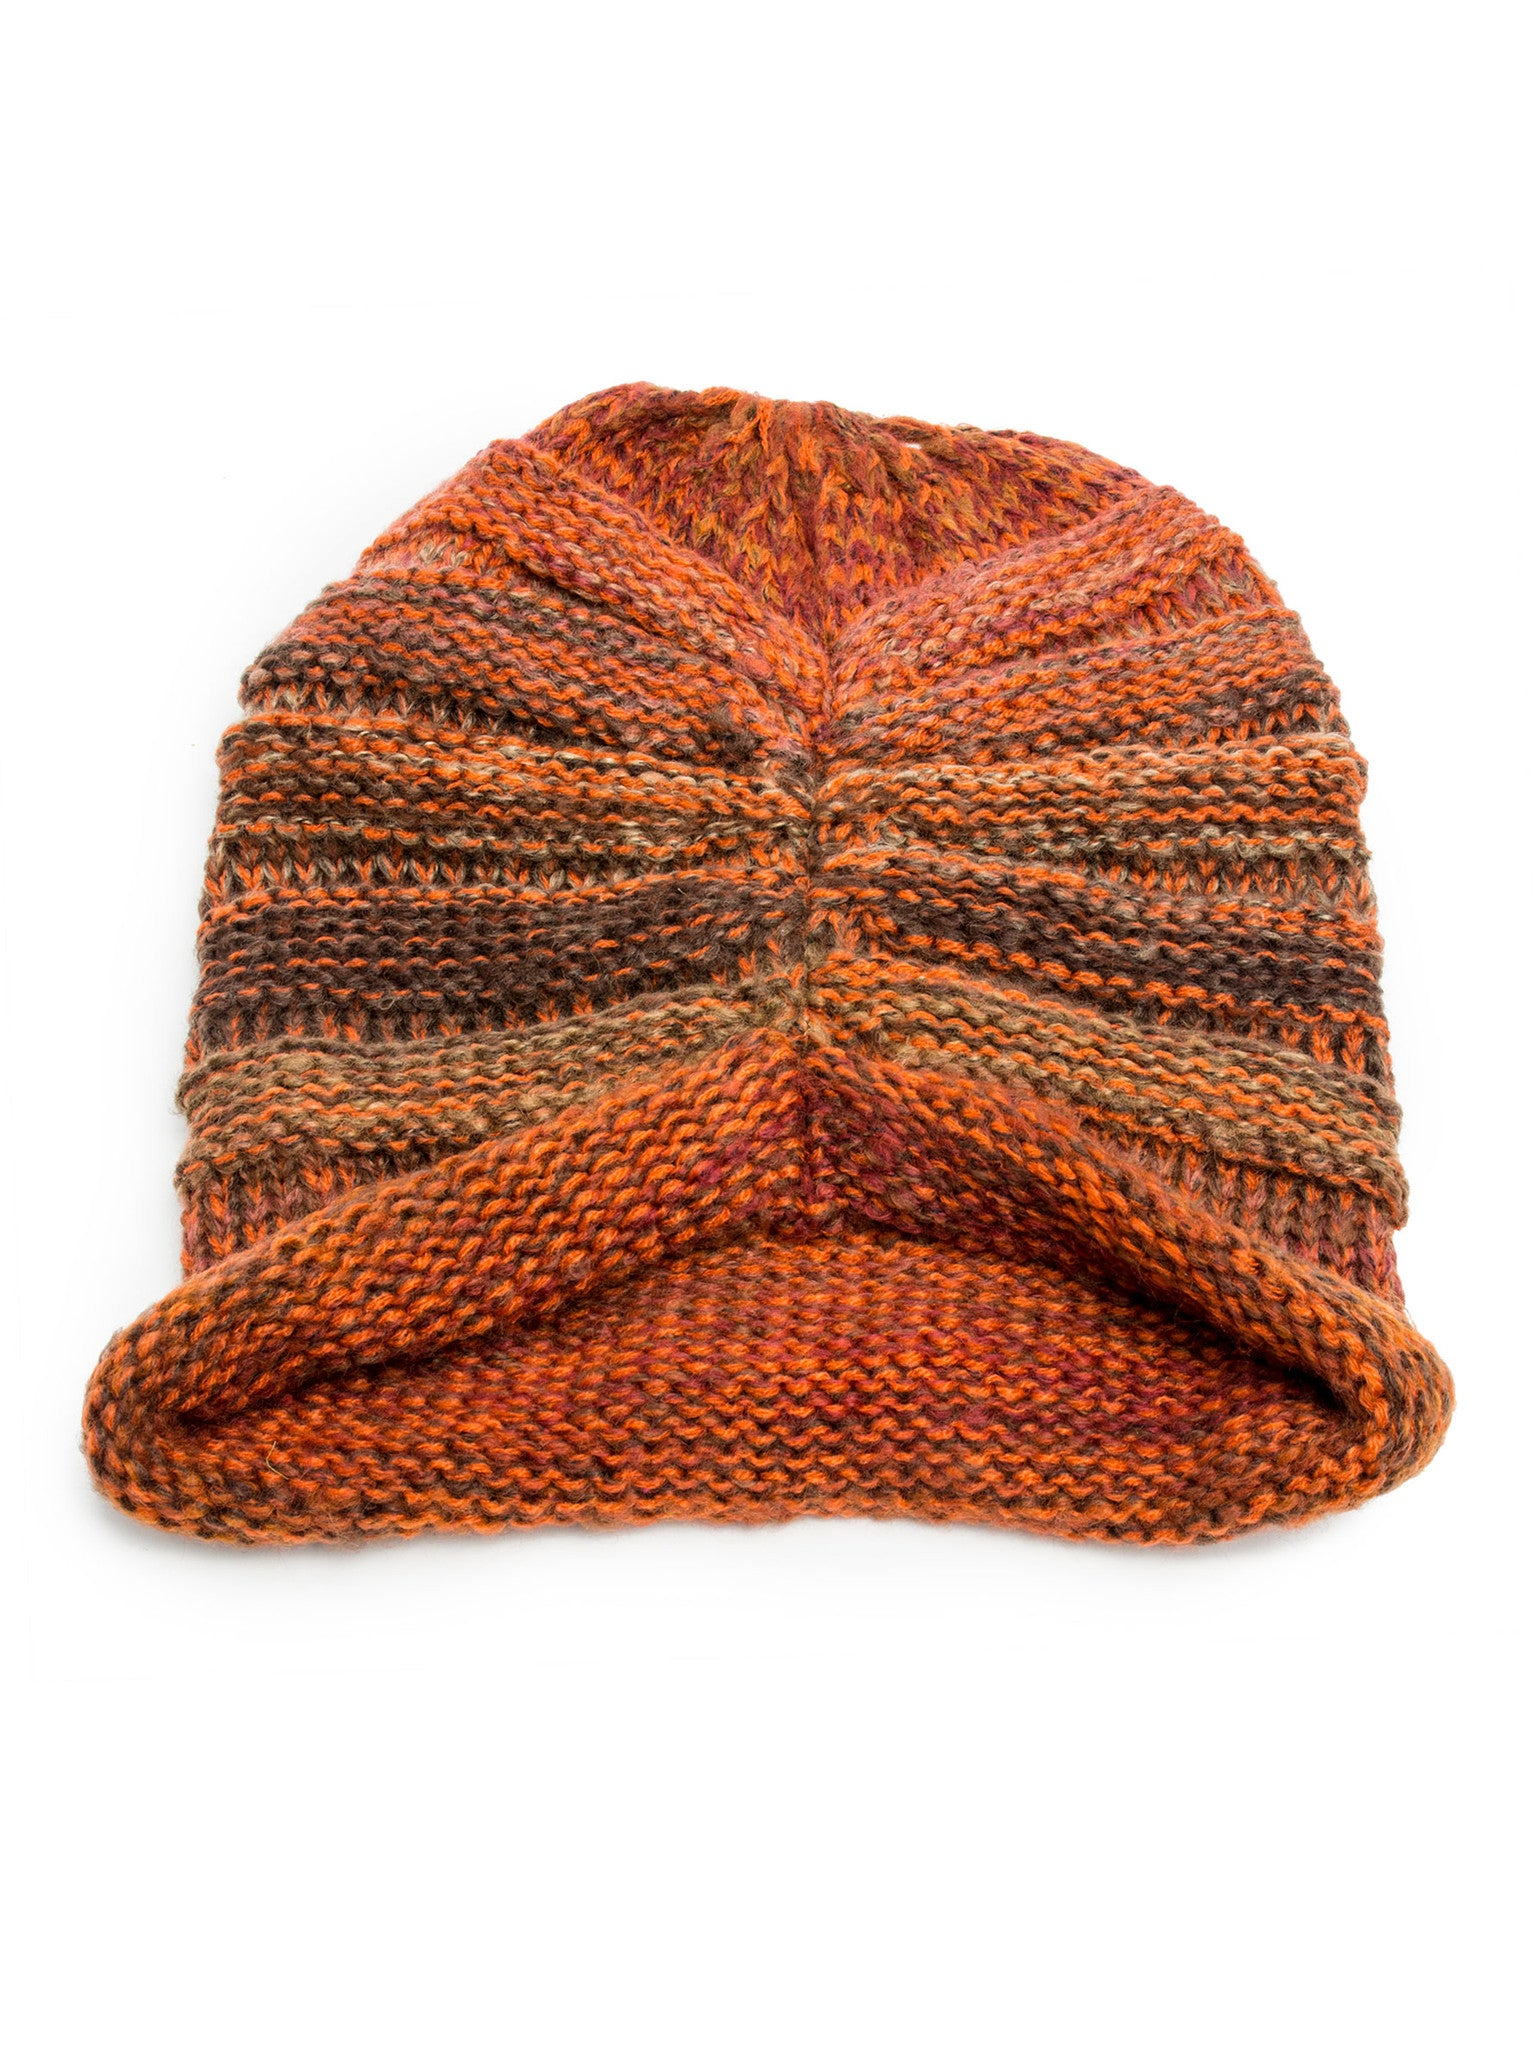 Hat - Aspen, Winter Knit Ombre Beanie -() Bohomonde  - 4